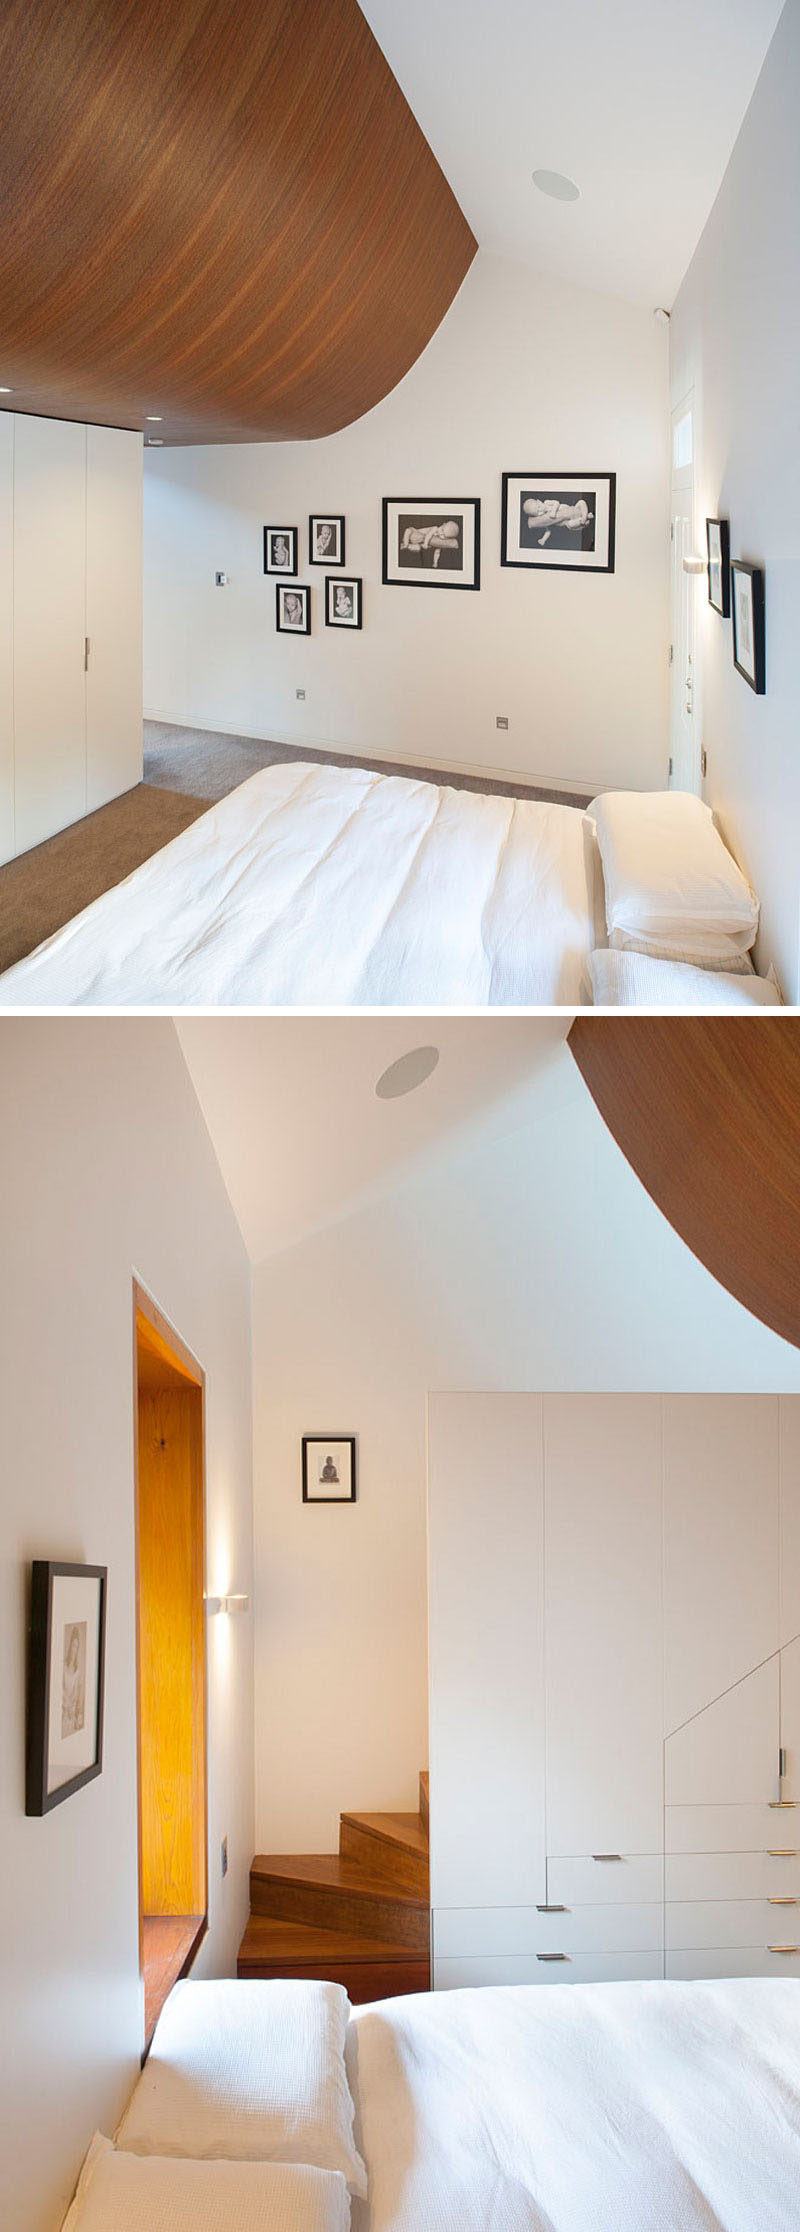 This bedroom has a curved wooden ceiling that contrasts the white walls.